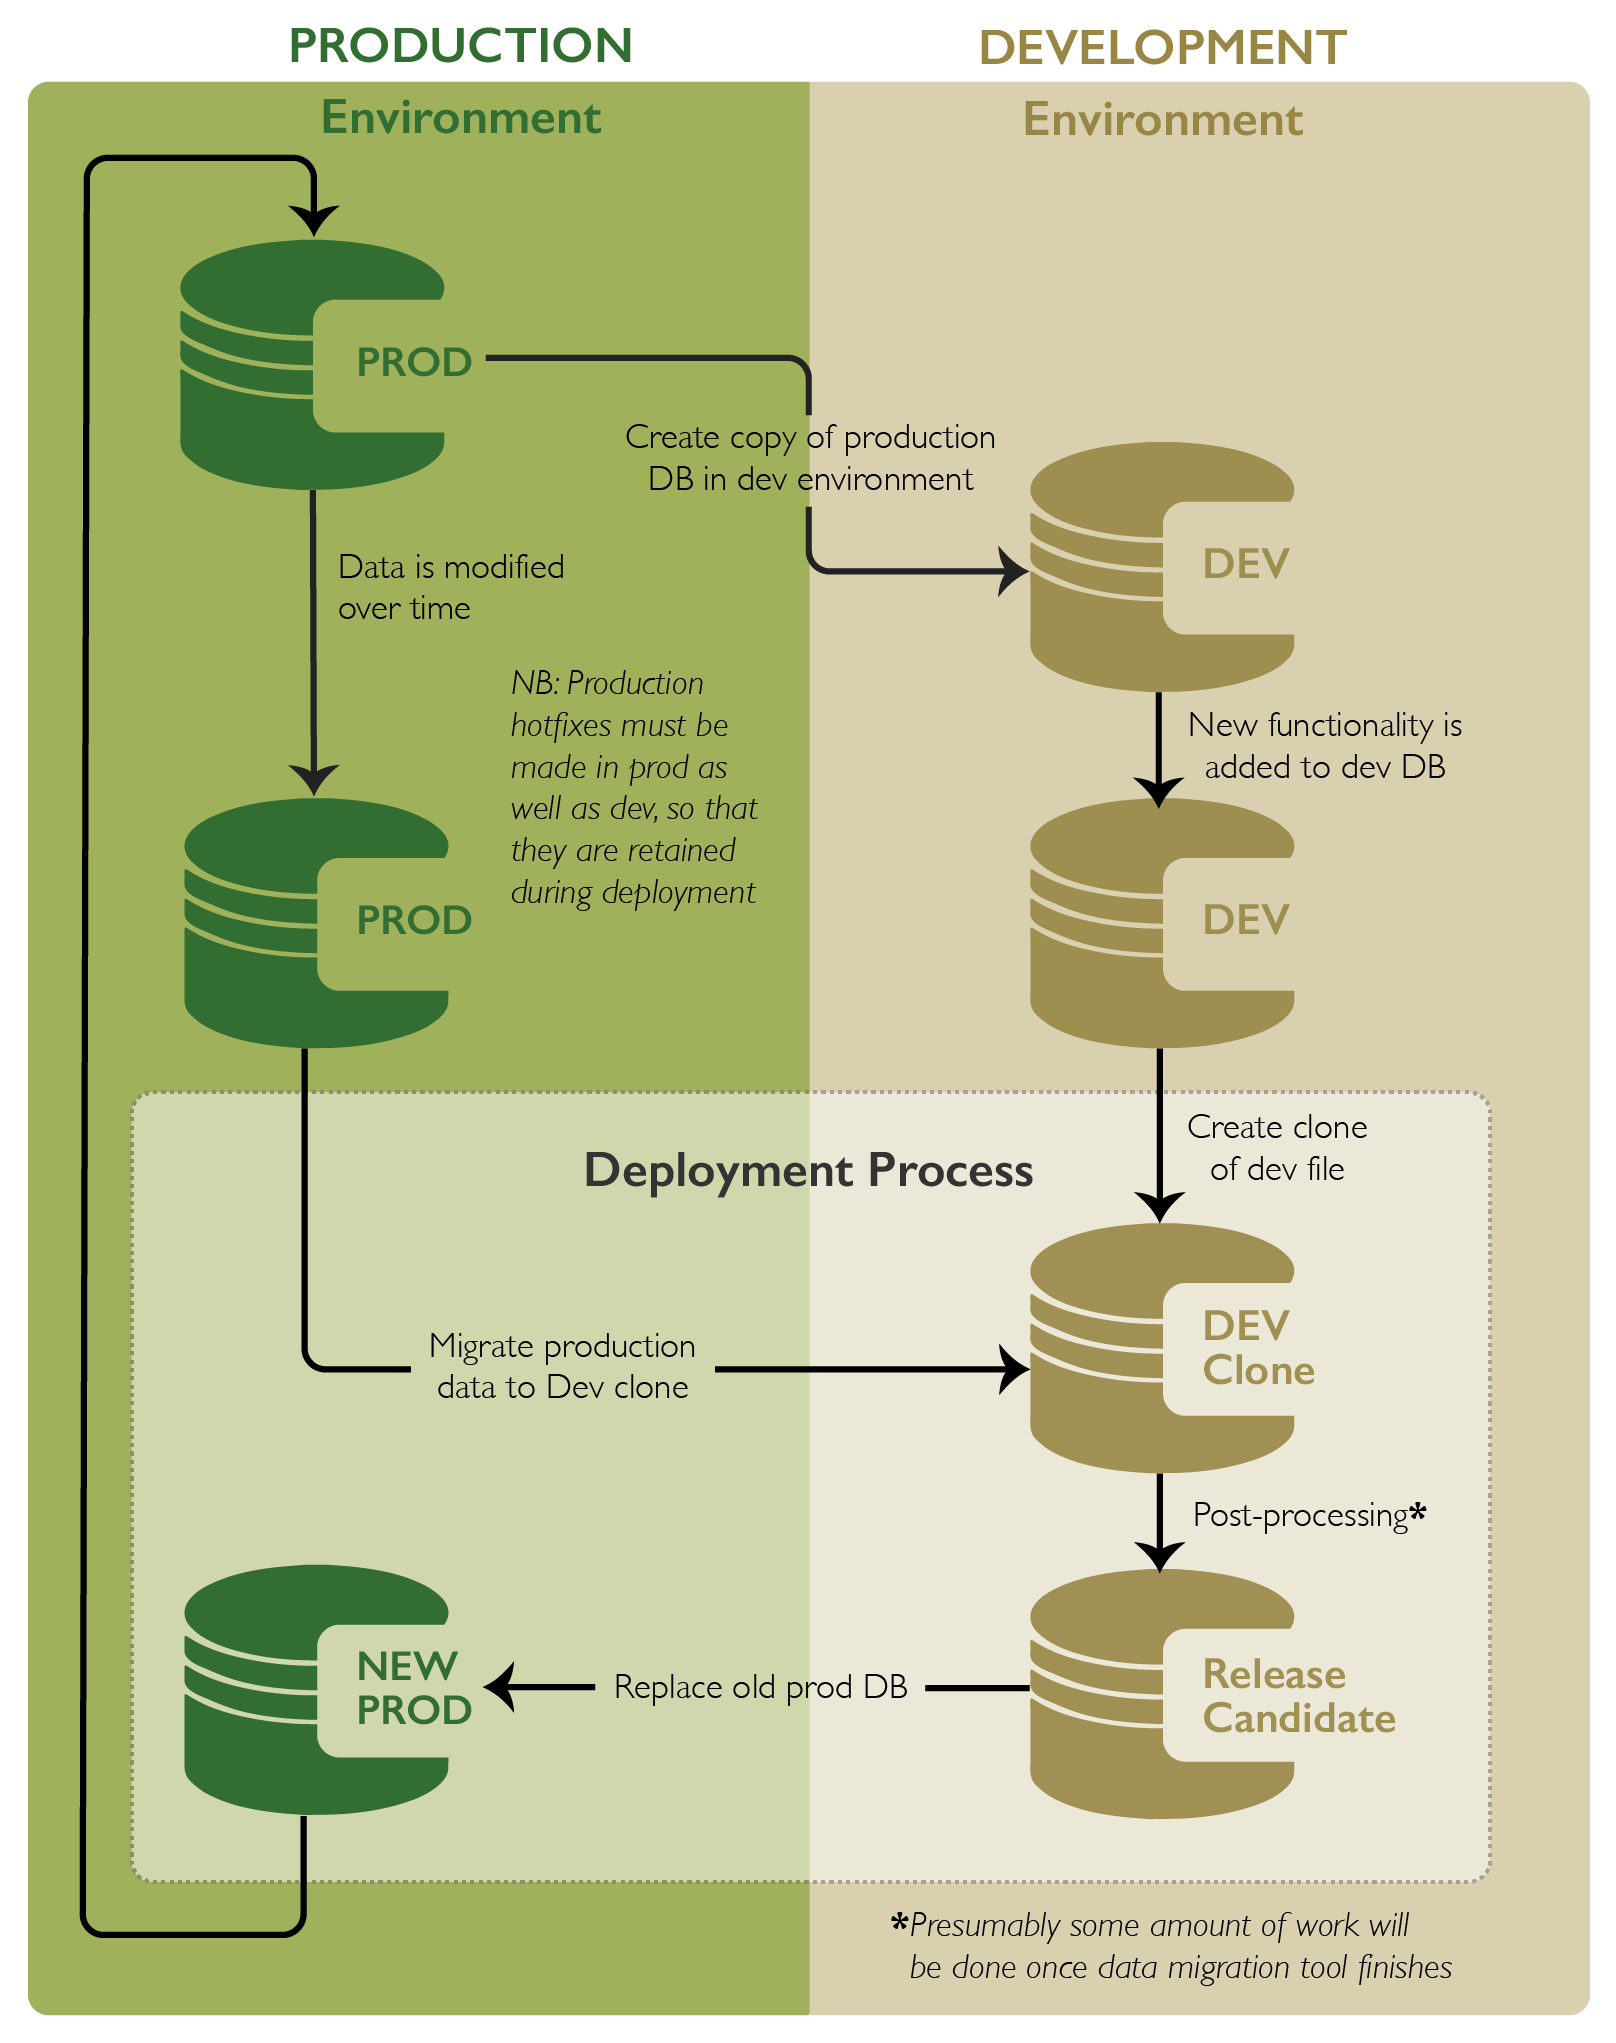 Deployment model diagram for FMDataMigration tool